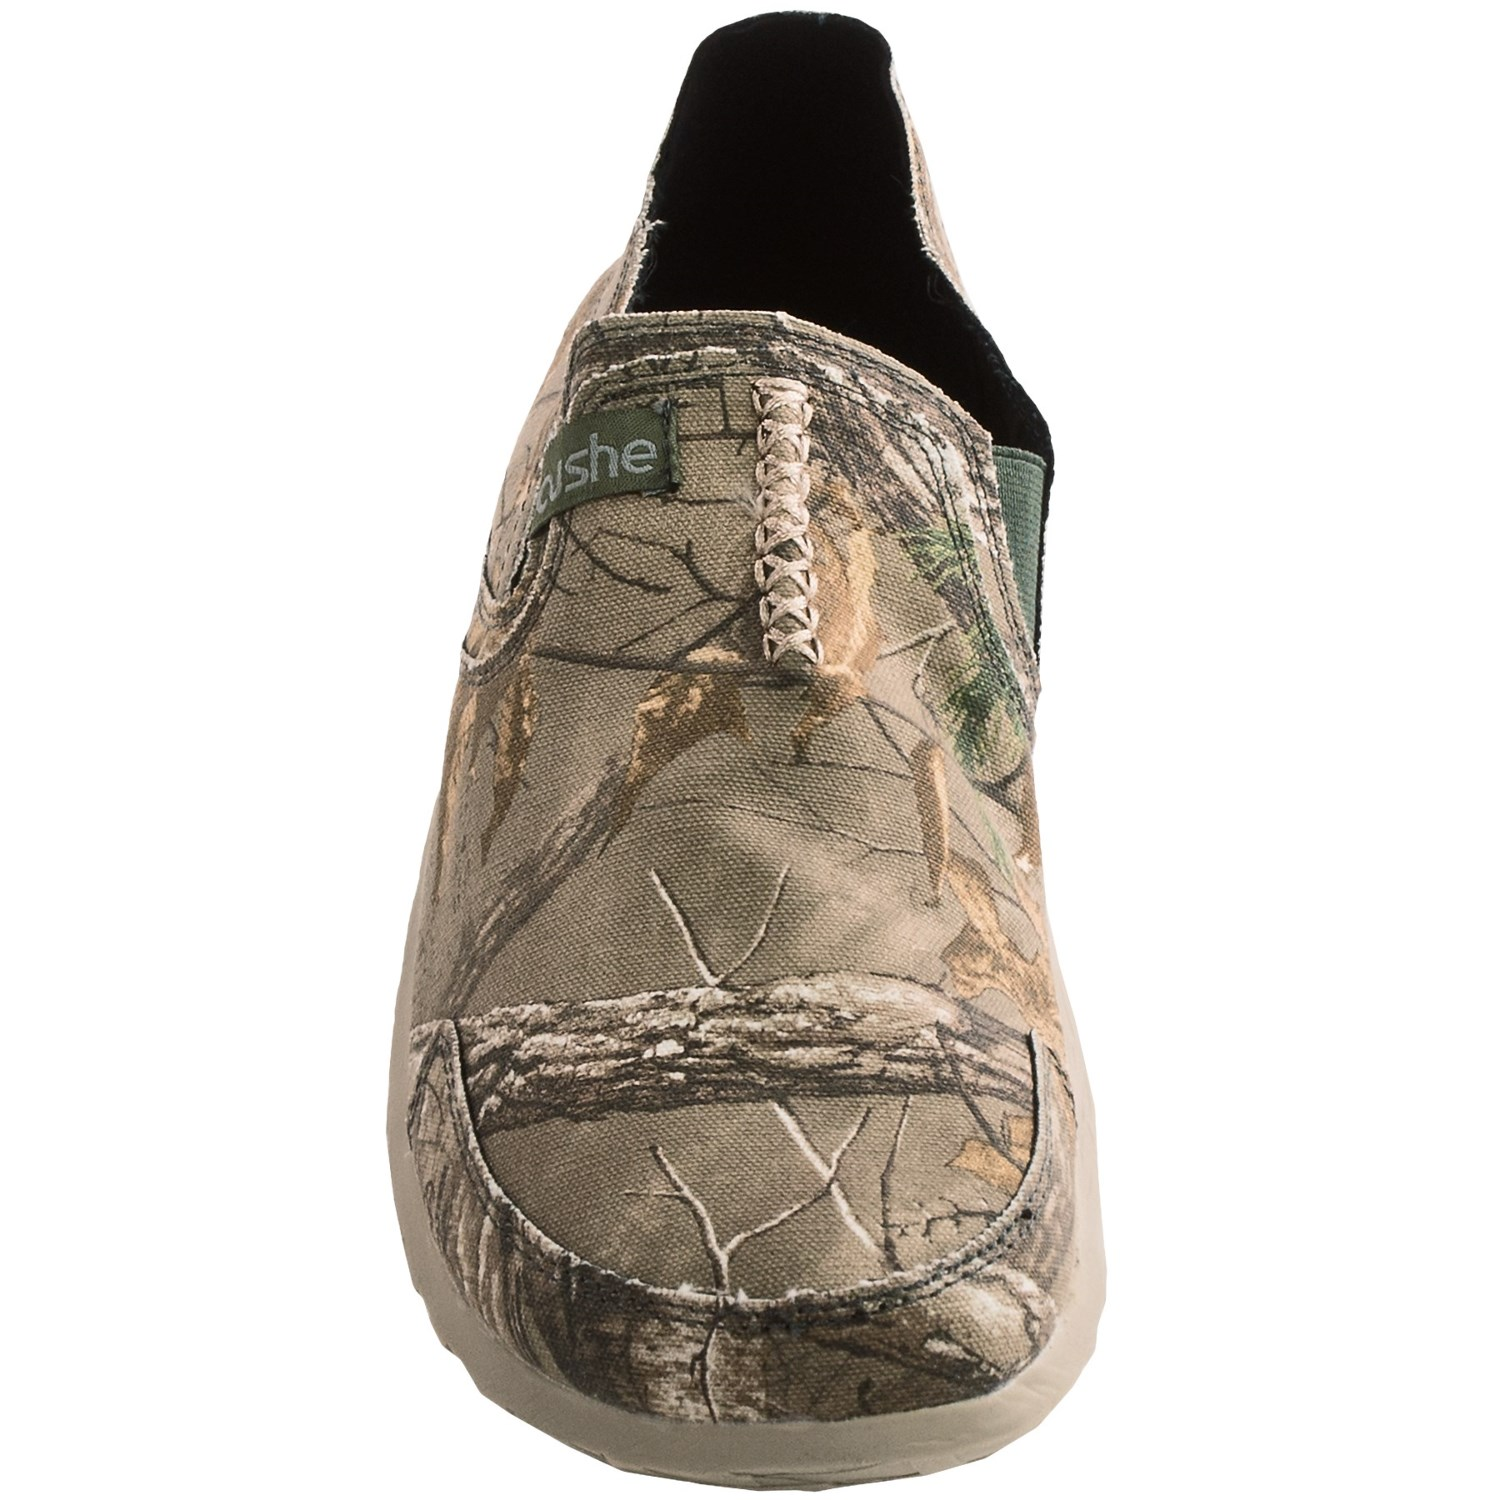 Realtree Brand Shoes